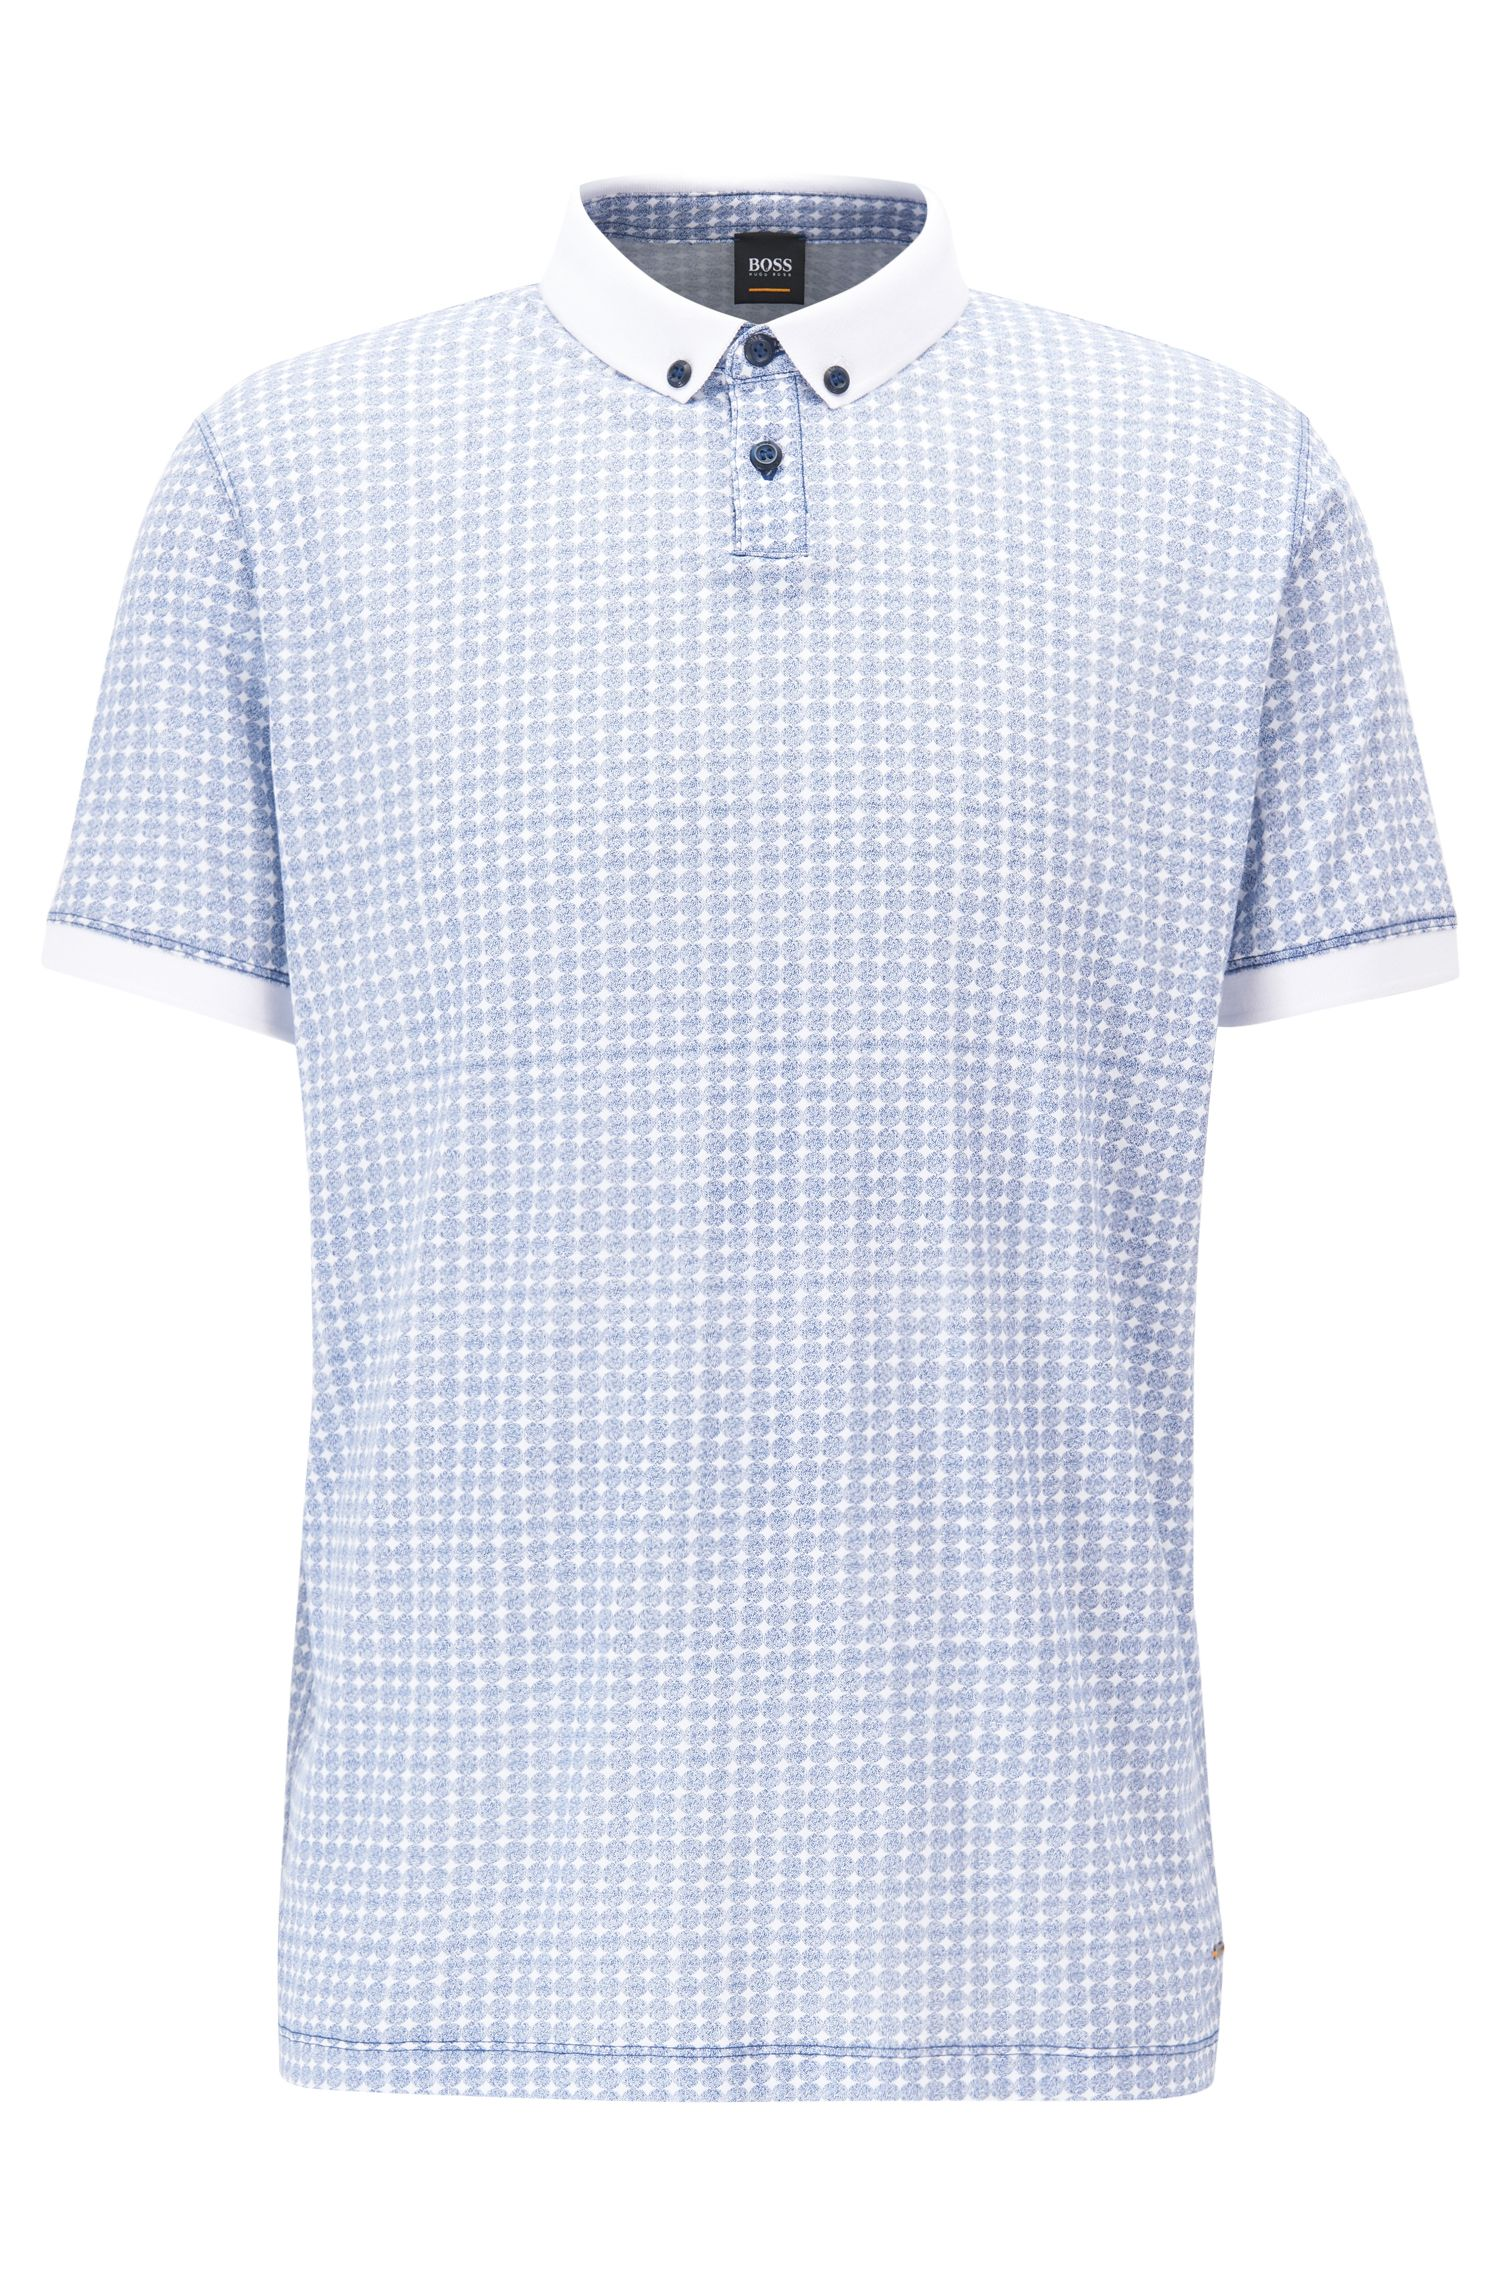 Relaxed-fit polo shirt in patterned cotton